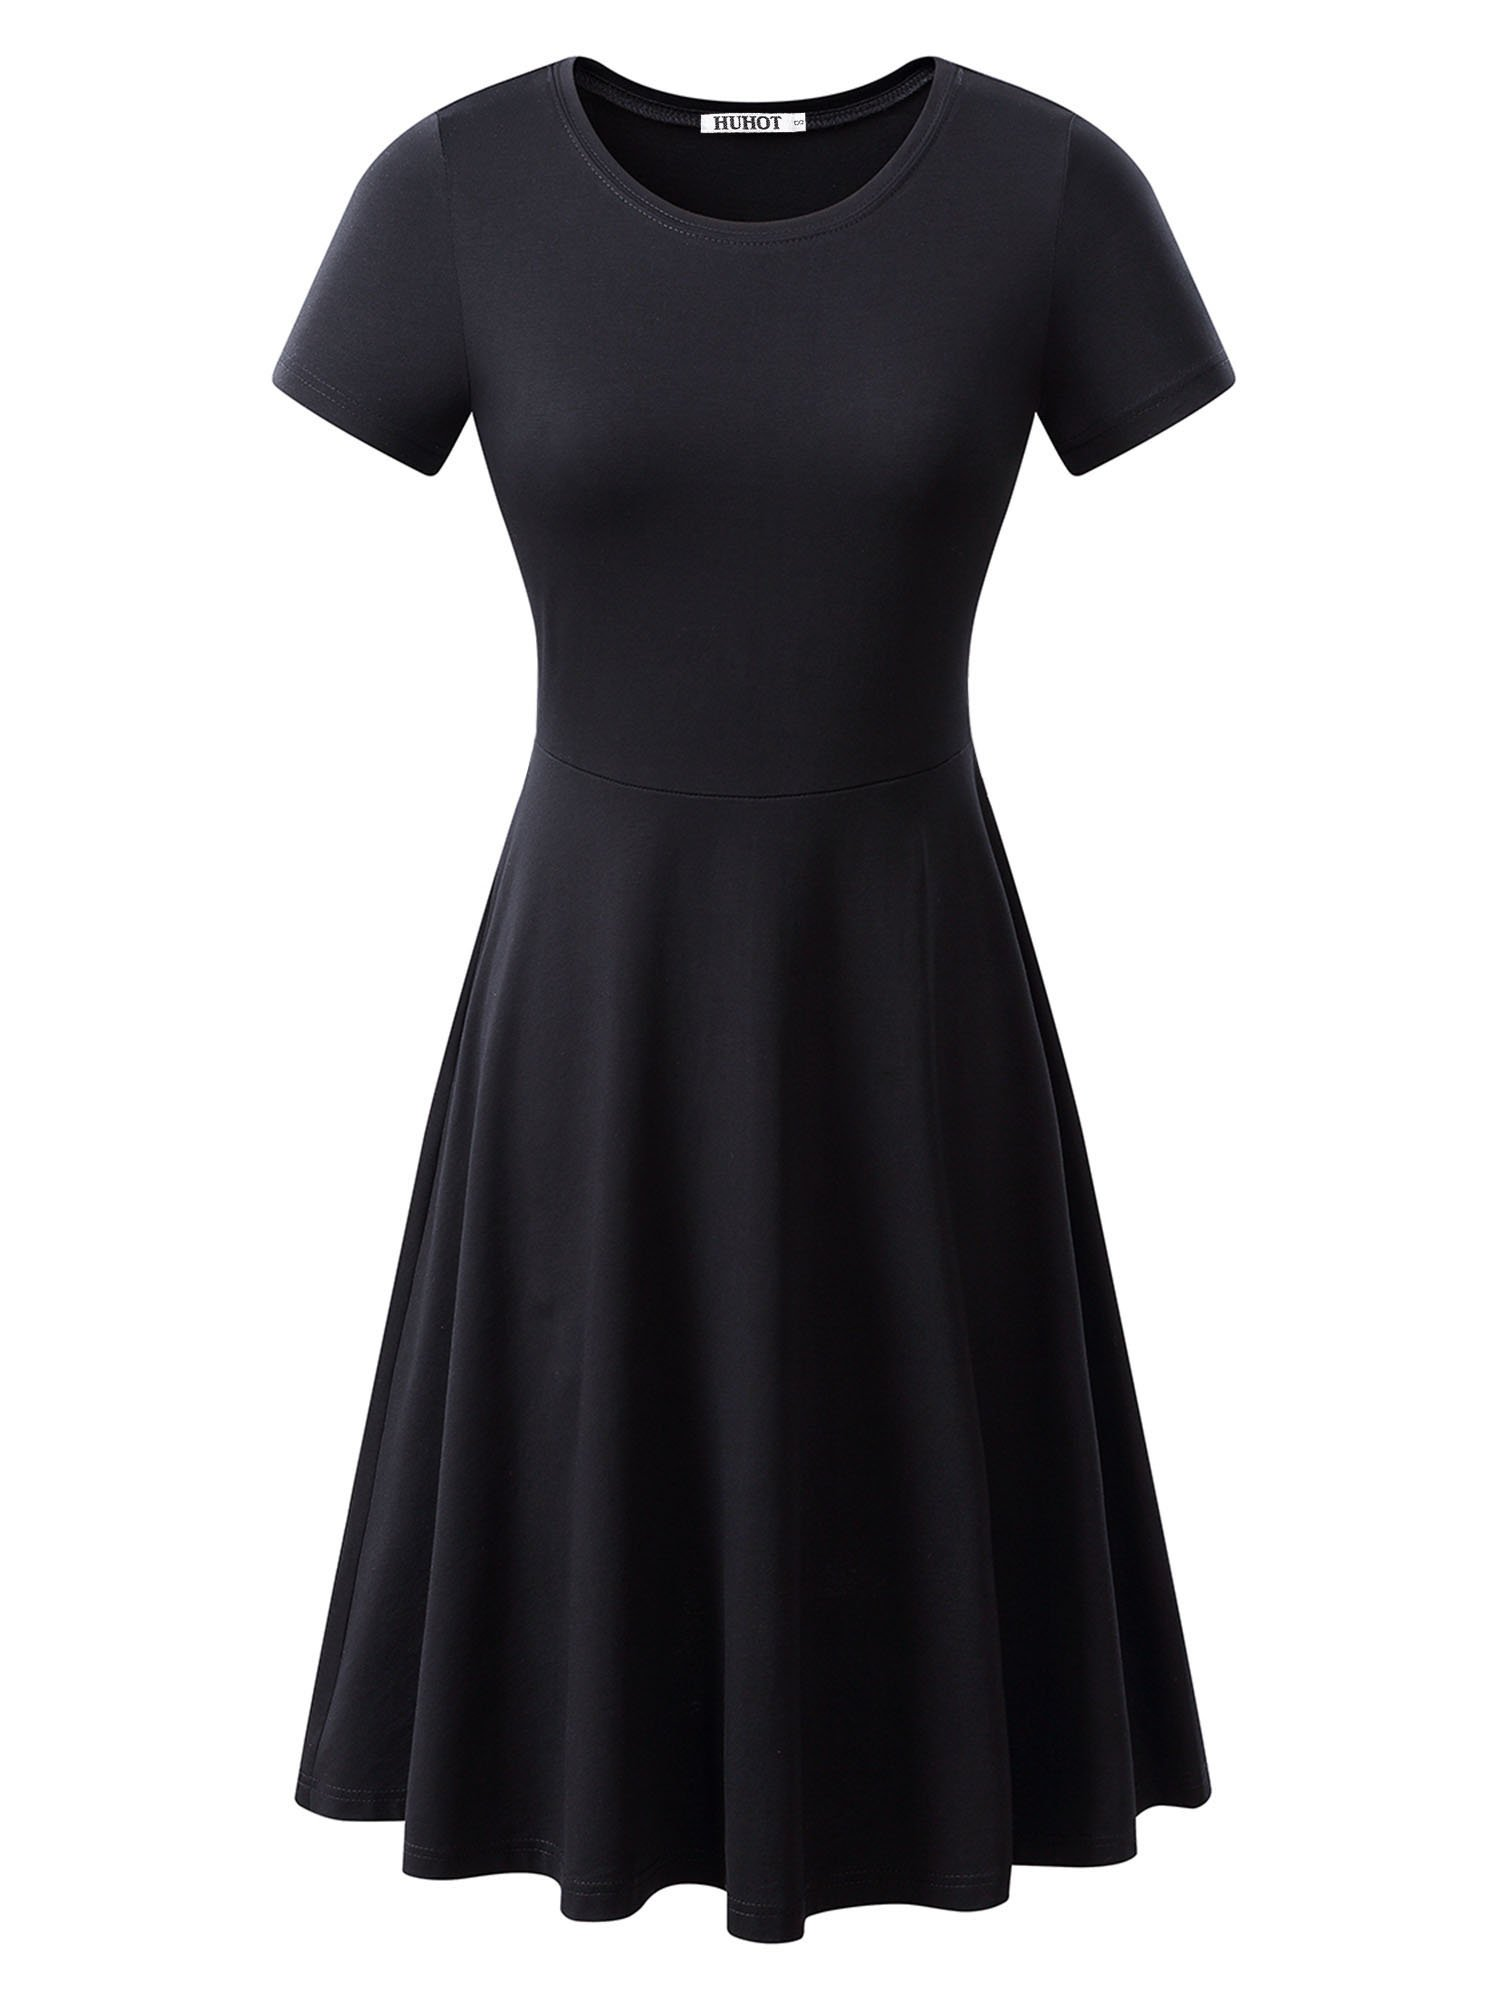 HUHOT Women Short Sleeve Round Neck Summer Casual Flared Midi Dress Large Black